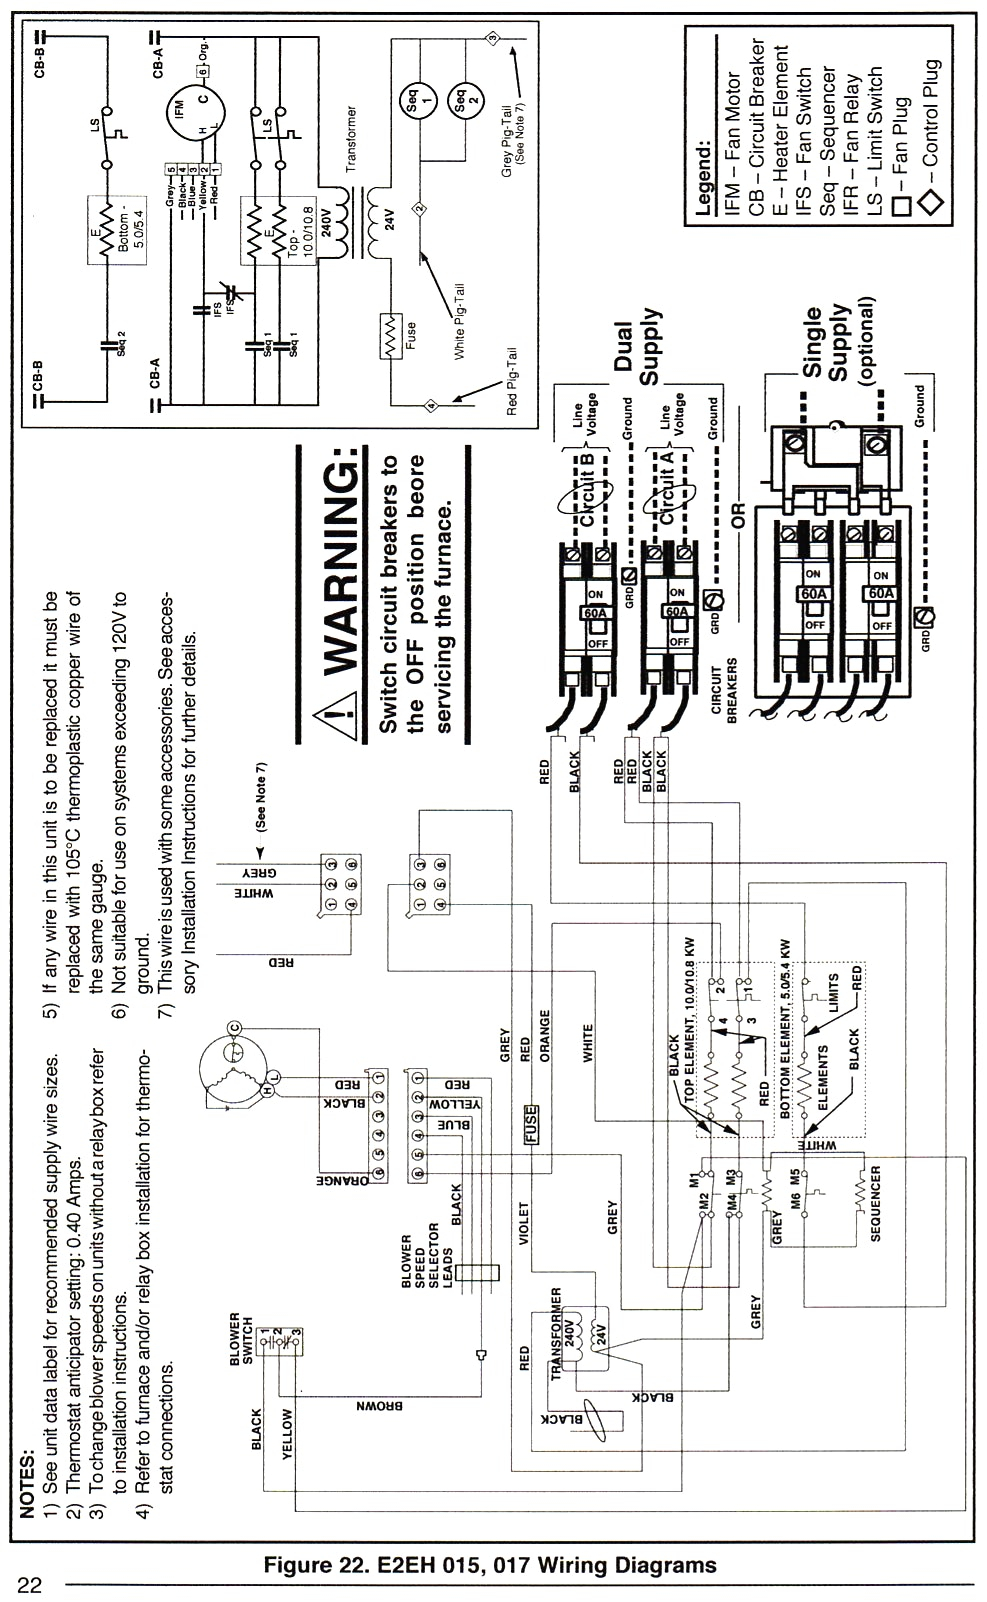 Intertherm Furnace Parts Diagram | Schematic Diagram on furnace blower wiring diagram, gas furnace diagram, york furnace diagram, gibson furnace diagram, intertherm furnace diagram, honeywell furnace diagram, coleman furnace diagram, lennox furnace diagram, carrier furnace diagram, airquest furnace diagram, whirlpool furnace diagram, tappan furnace diagram, frigidaire furnace diagram, janitrol furnace diagram, rheem furnace diagram, peerless furnace diagram, nordyne furnace diagram, bryant furnace diagram, trane furnace diagram, day & night furnace diagram,